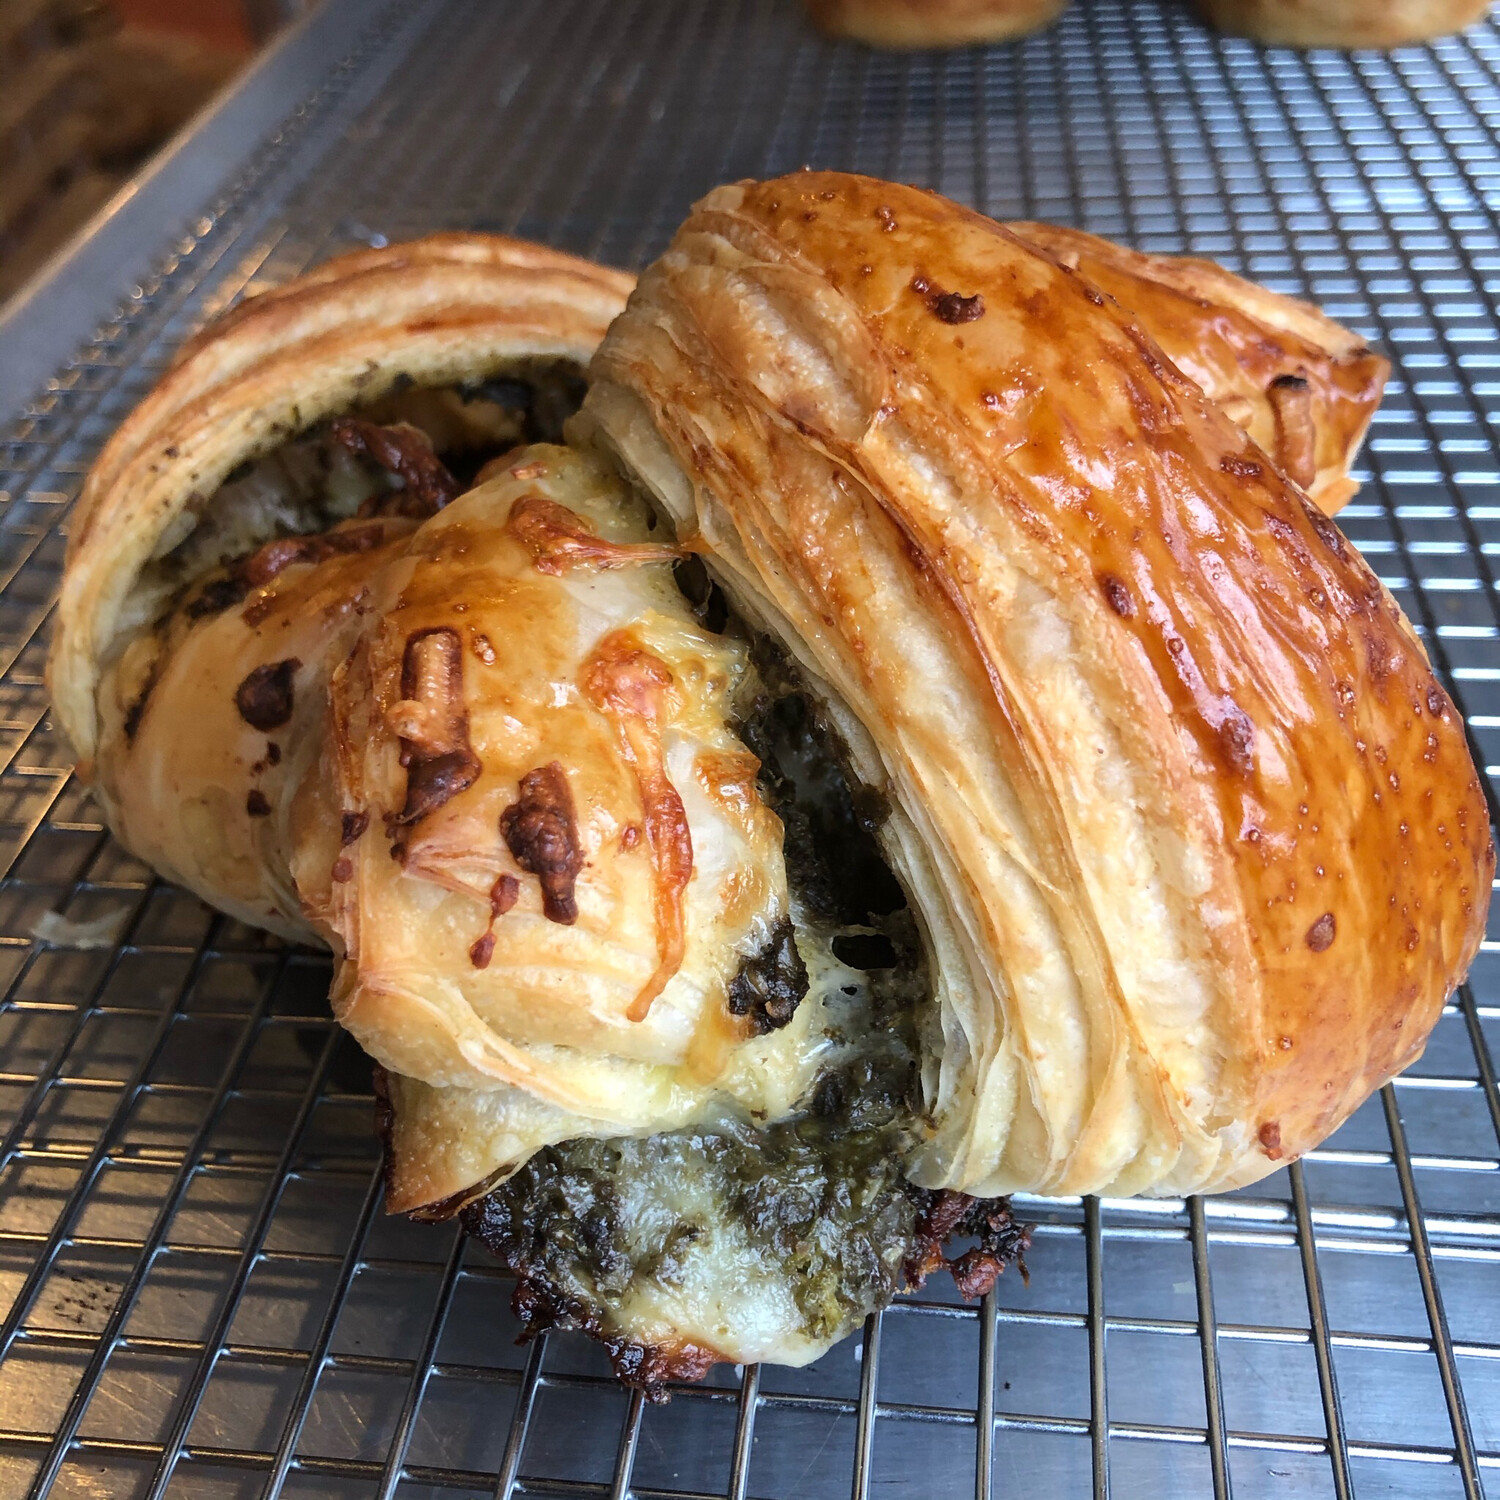 Pesto And Cheese Croissant-Saturday Only